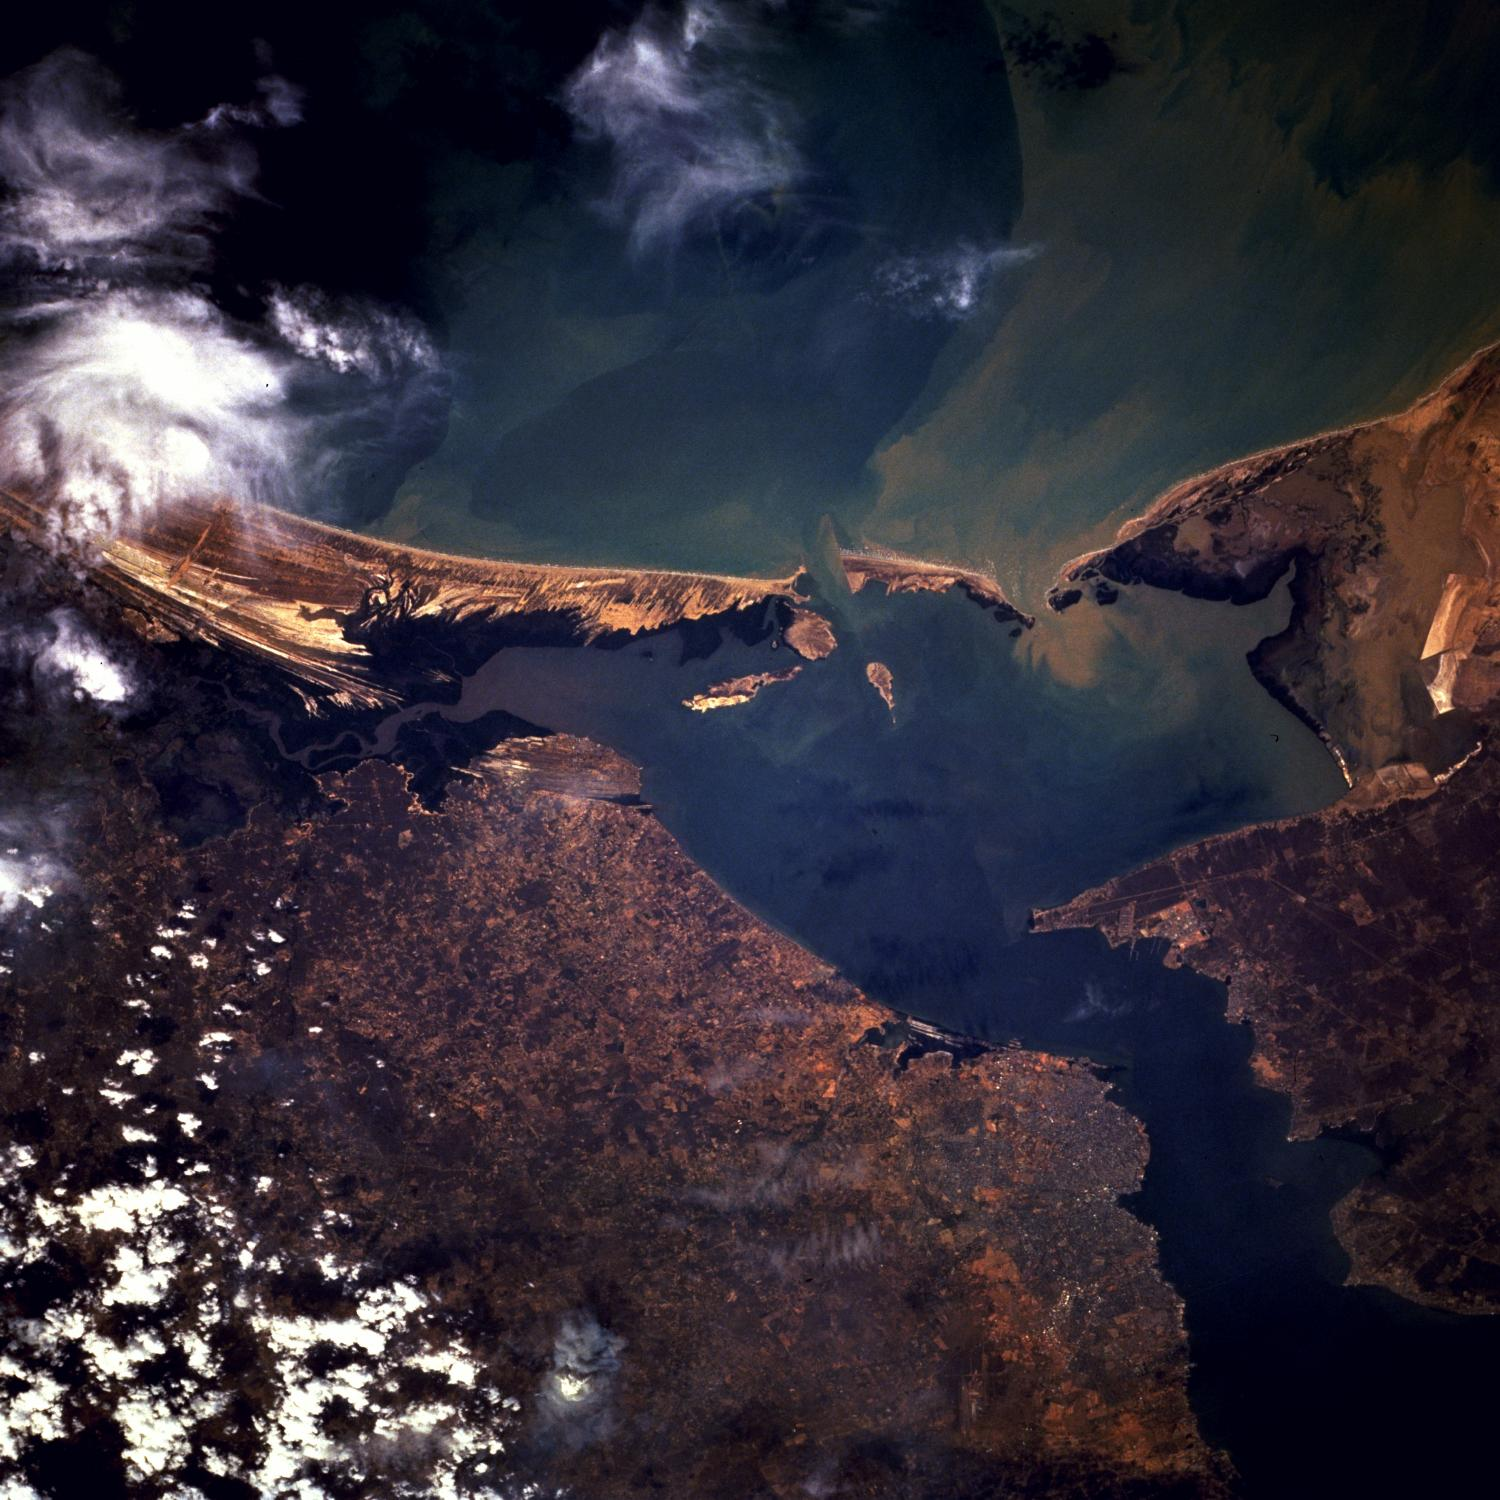 Satellite Image, Photo of Maracaibo City, Bay of Tablazo, Venezuela